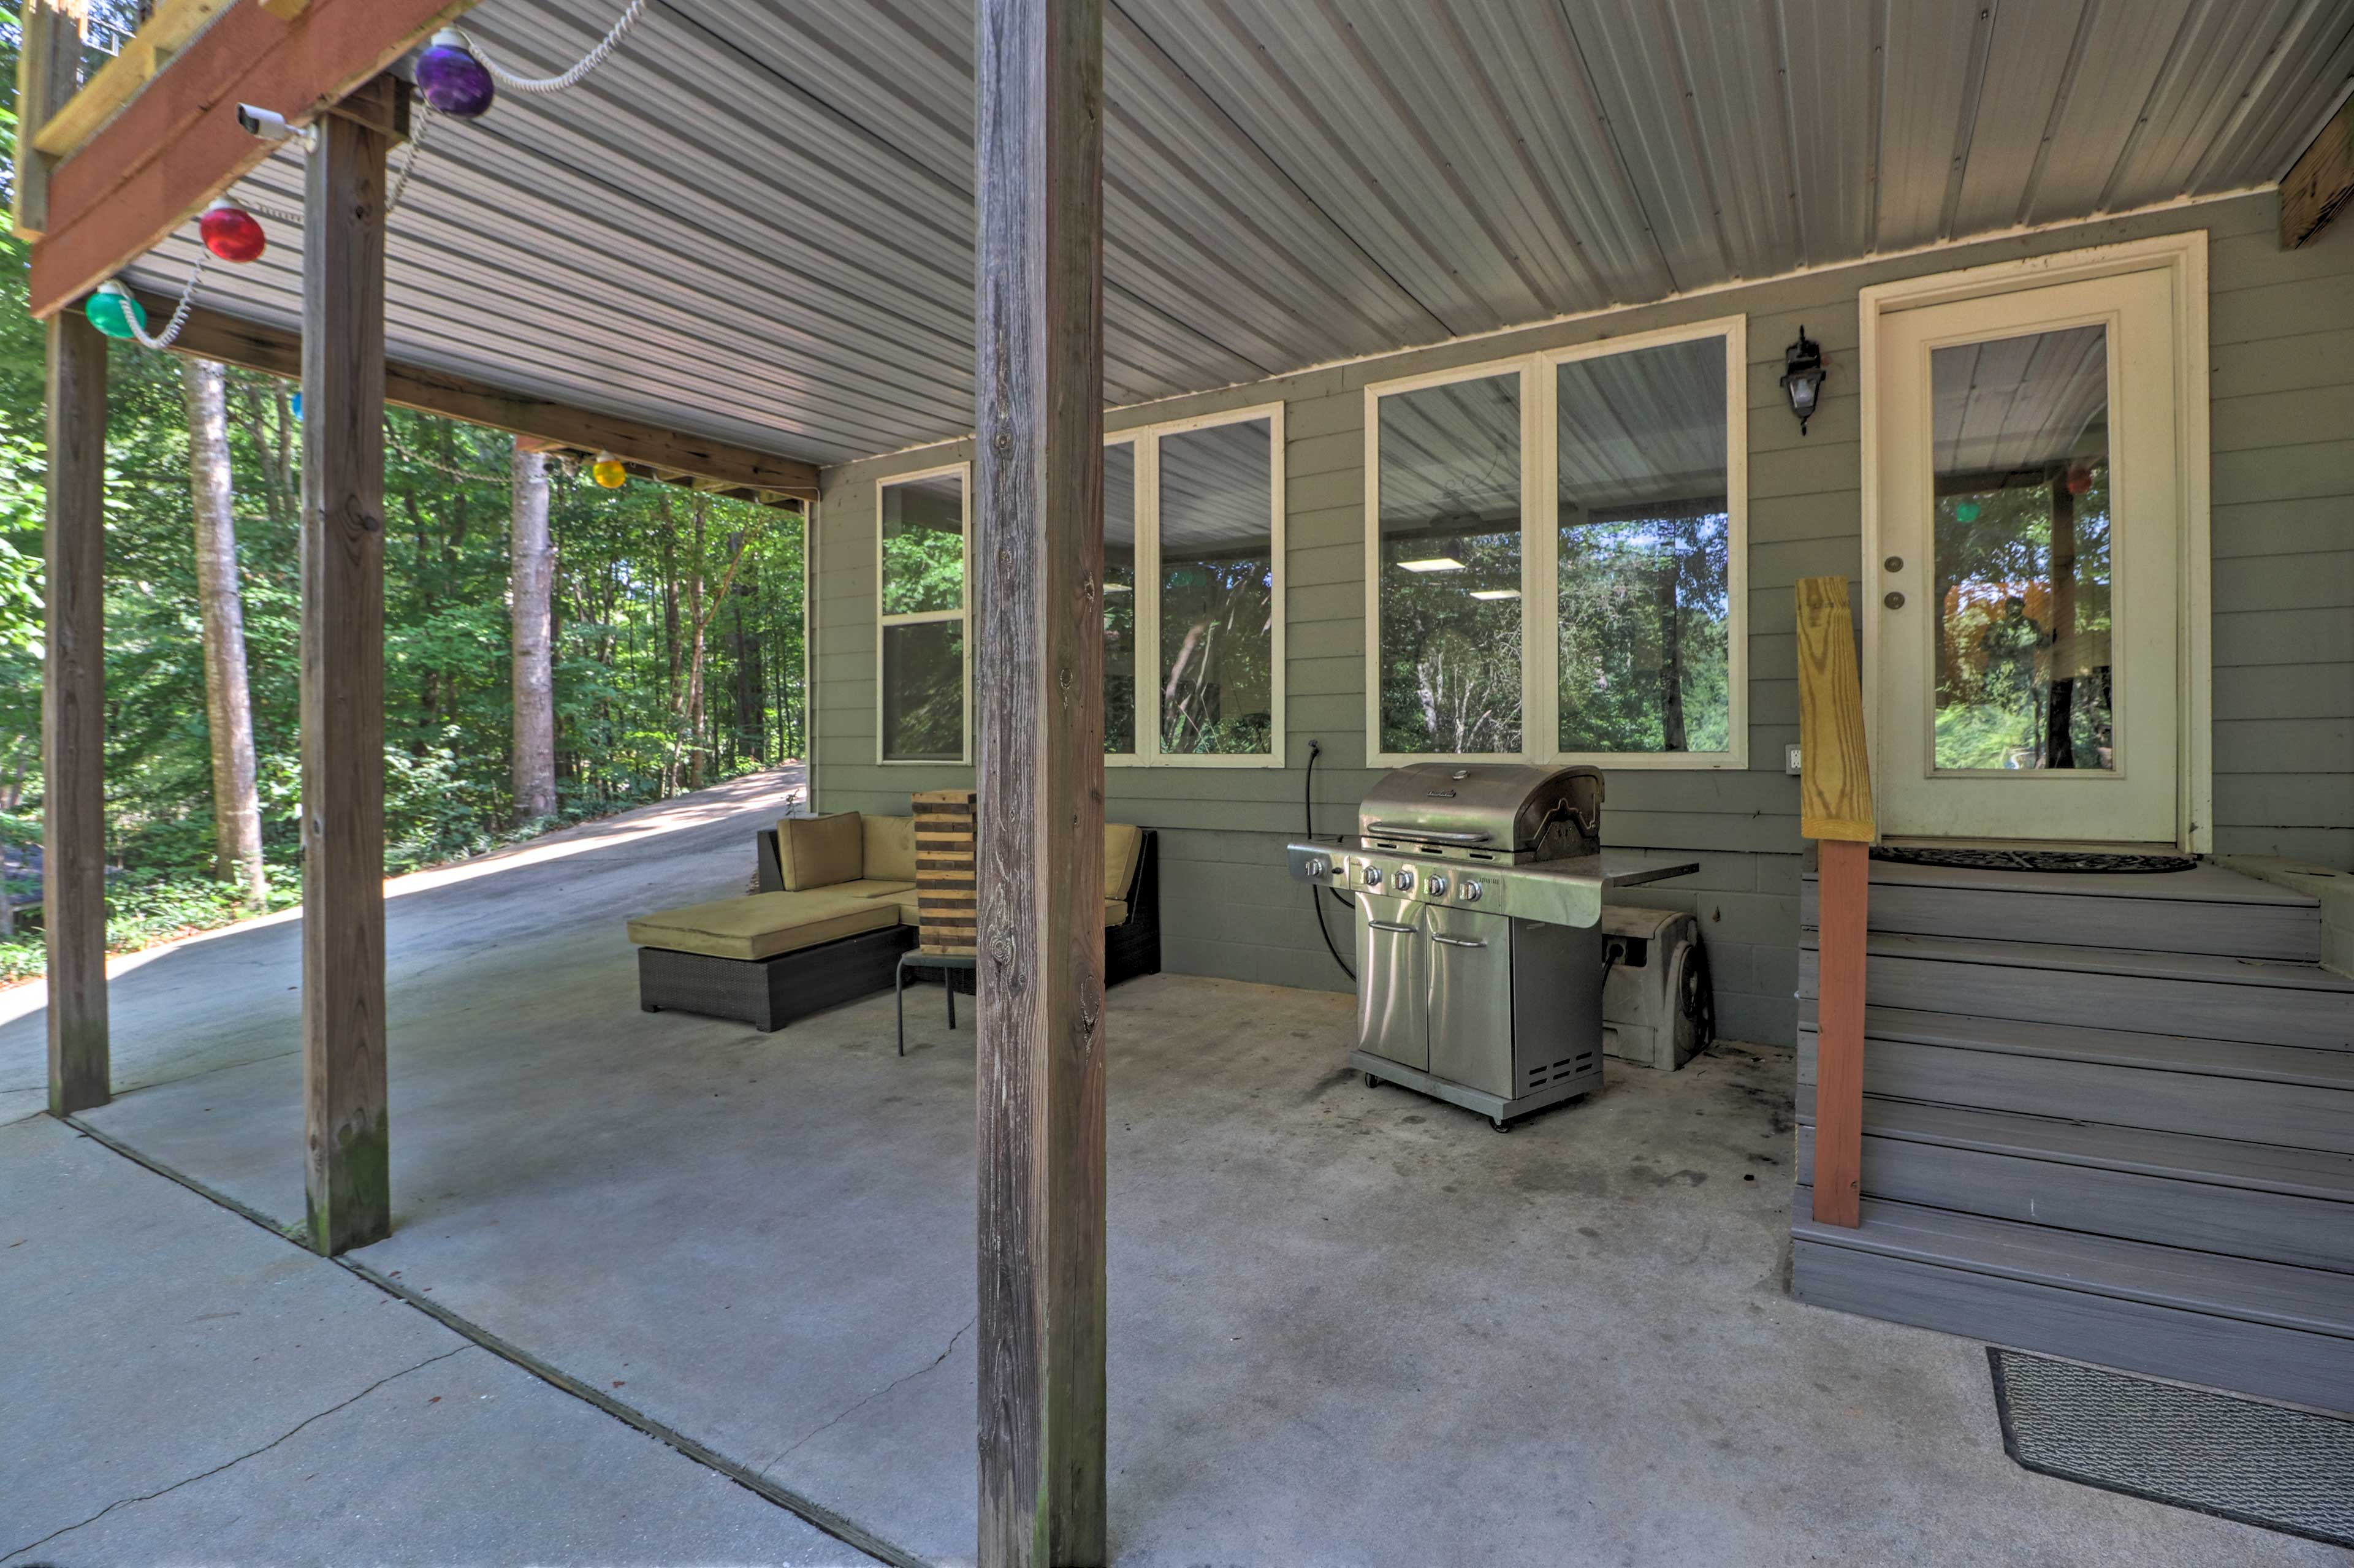 Covered Patio | Outdoor Couch